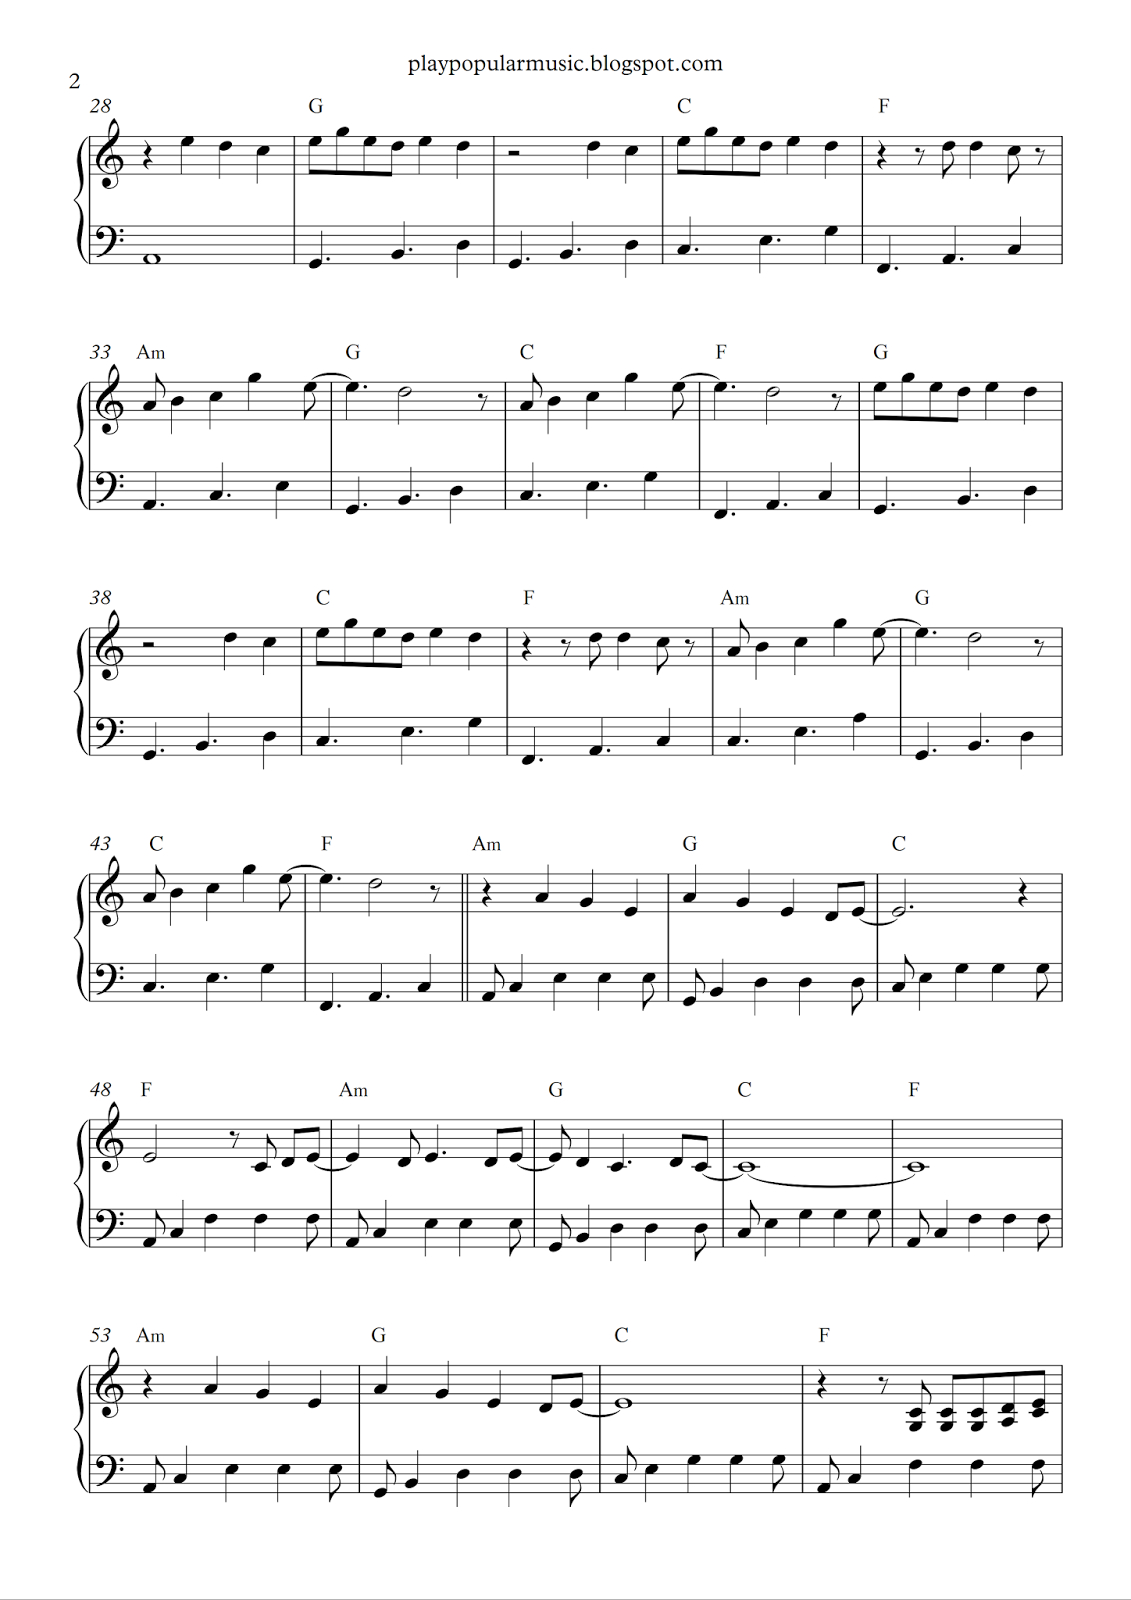 Free Piano Sheet Music: Shawn Mendes - Stitches.pdf N Ow That I'm - Airplanes Piano Sheet Music Free Printable